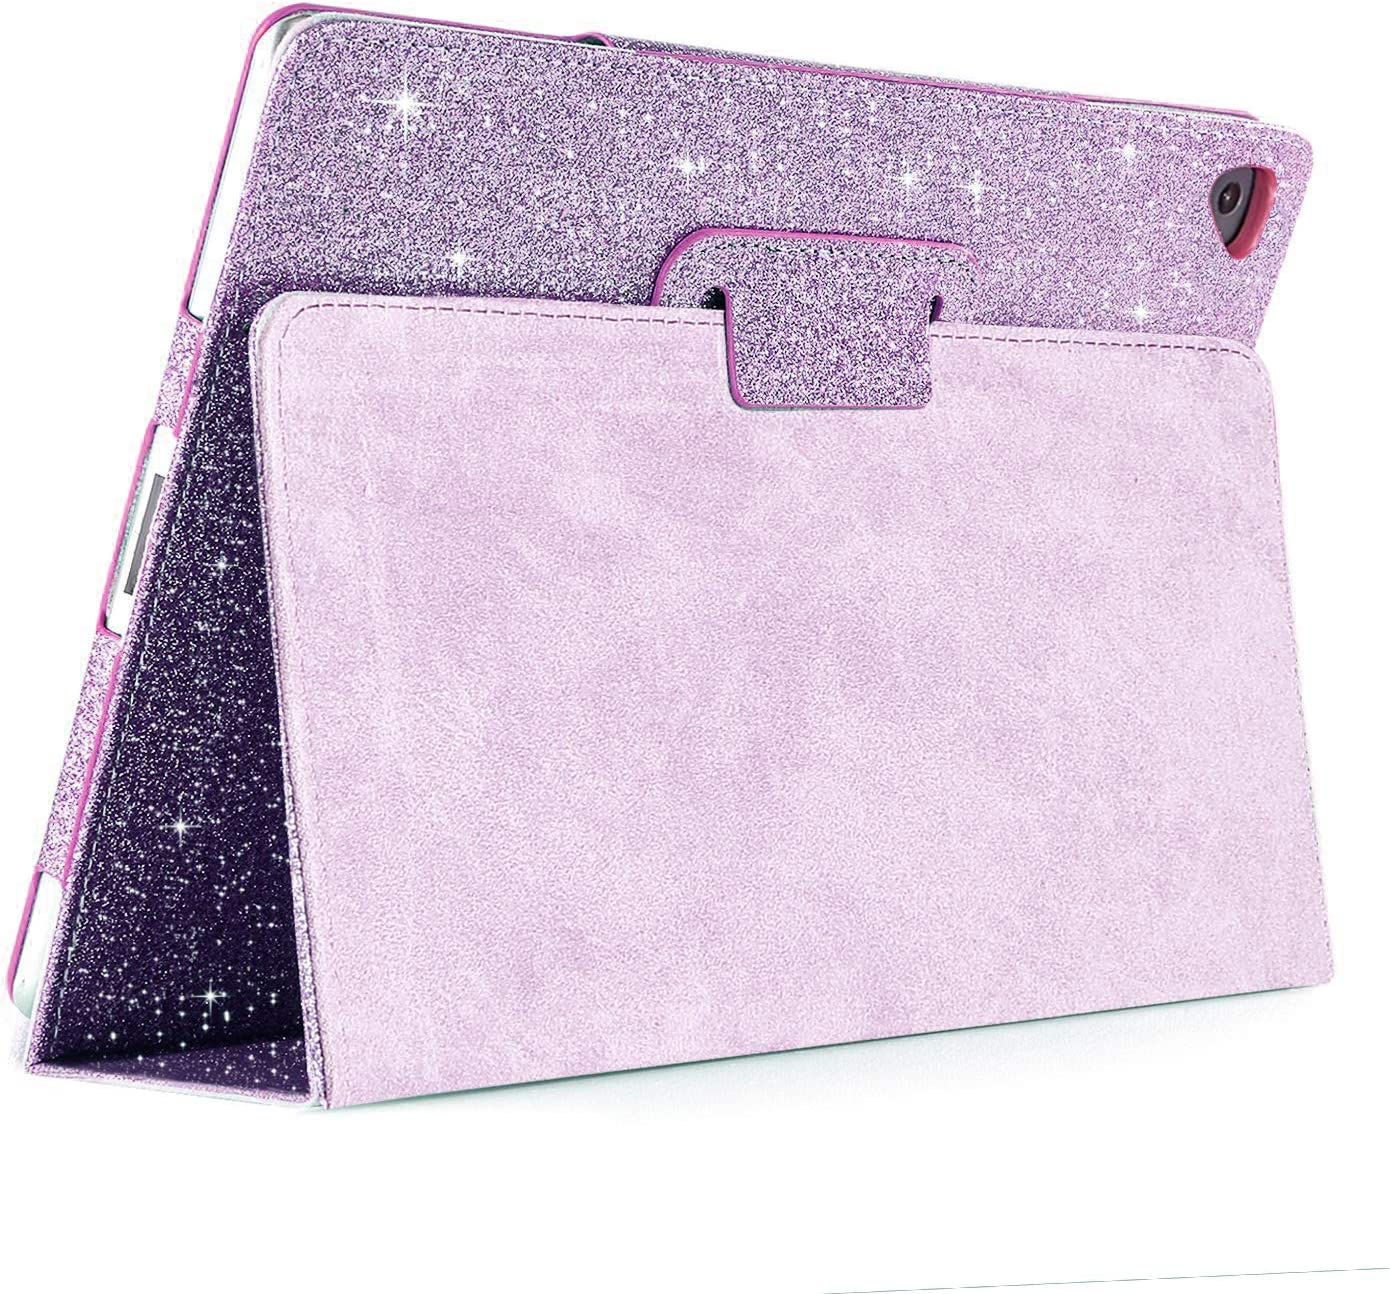 iPad Air/Air2/Pro 9.7 2017 Glitter Case,FANSONG Bling Sparkle PU Leather Smart Cover [Flip Stand Function] [Auto Sleep/Wake] Universal Case for Apple iPad Air/Air2/Pro 9.7 2017 (Bling Light Purple)